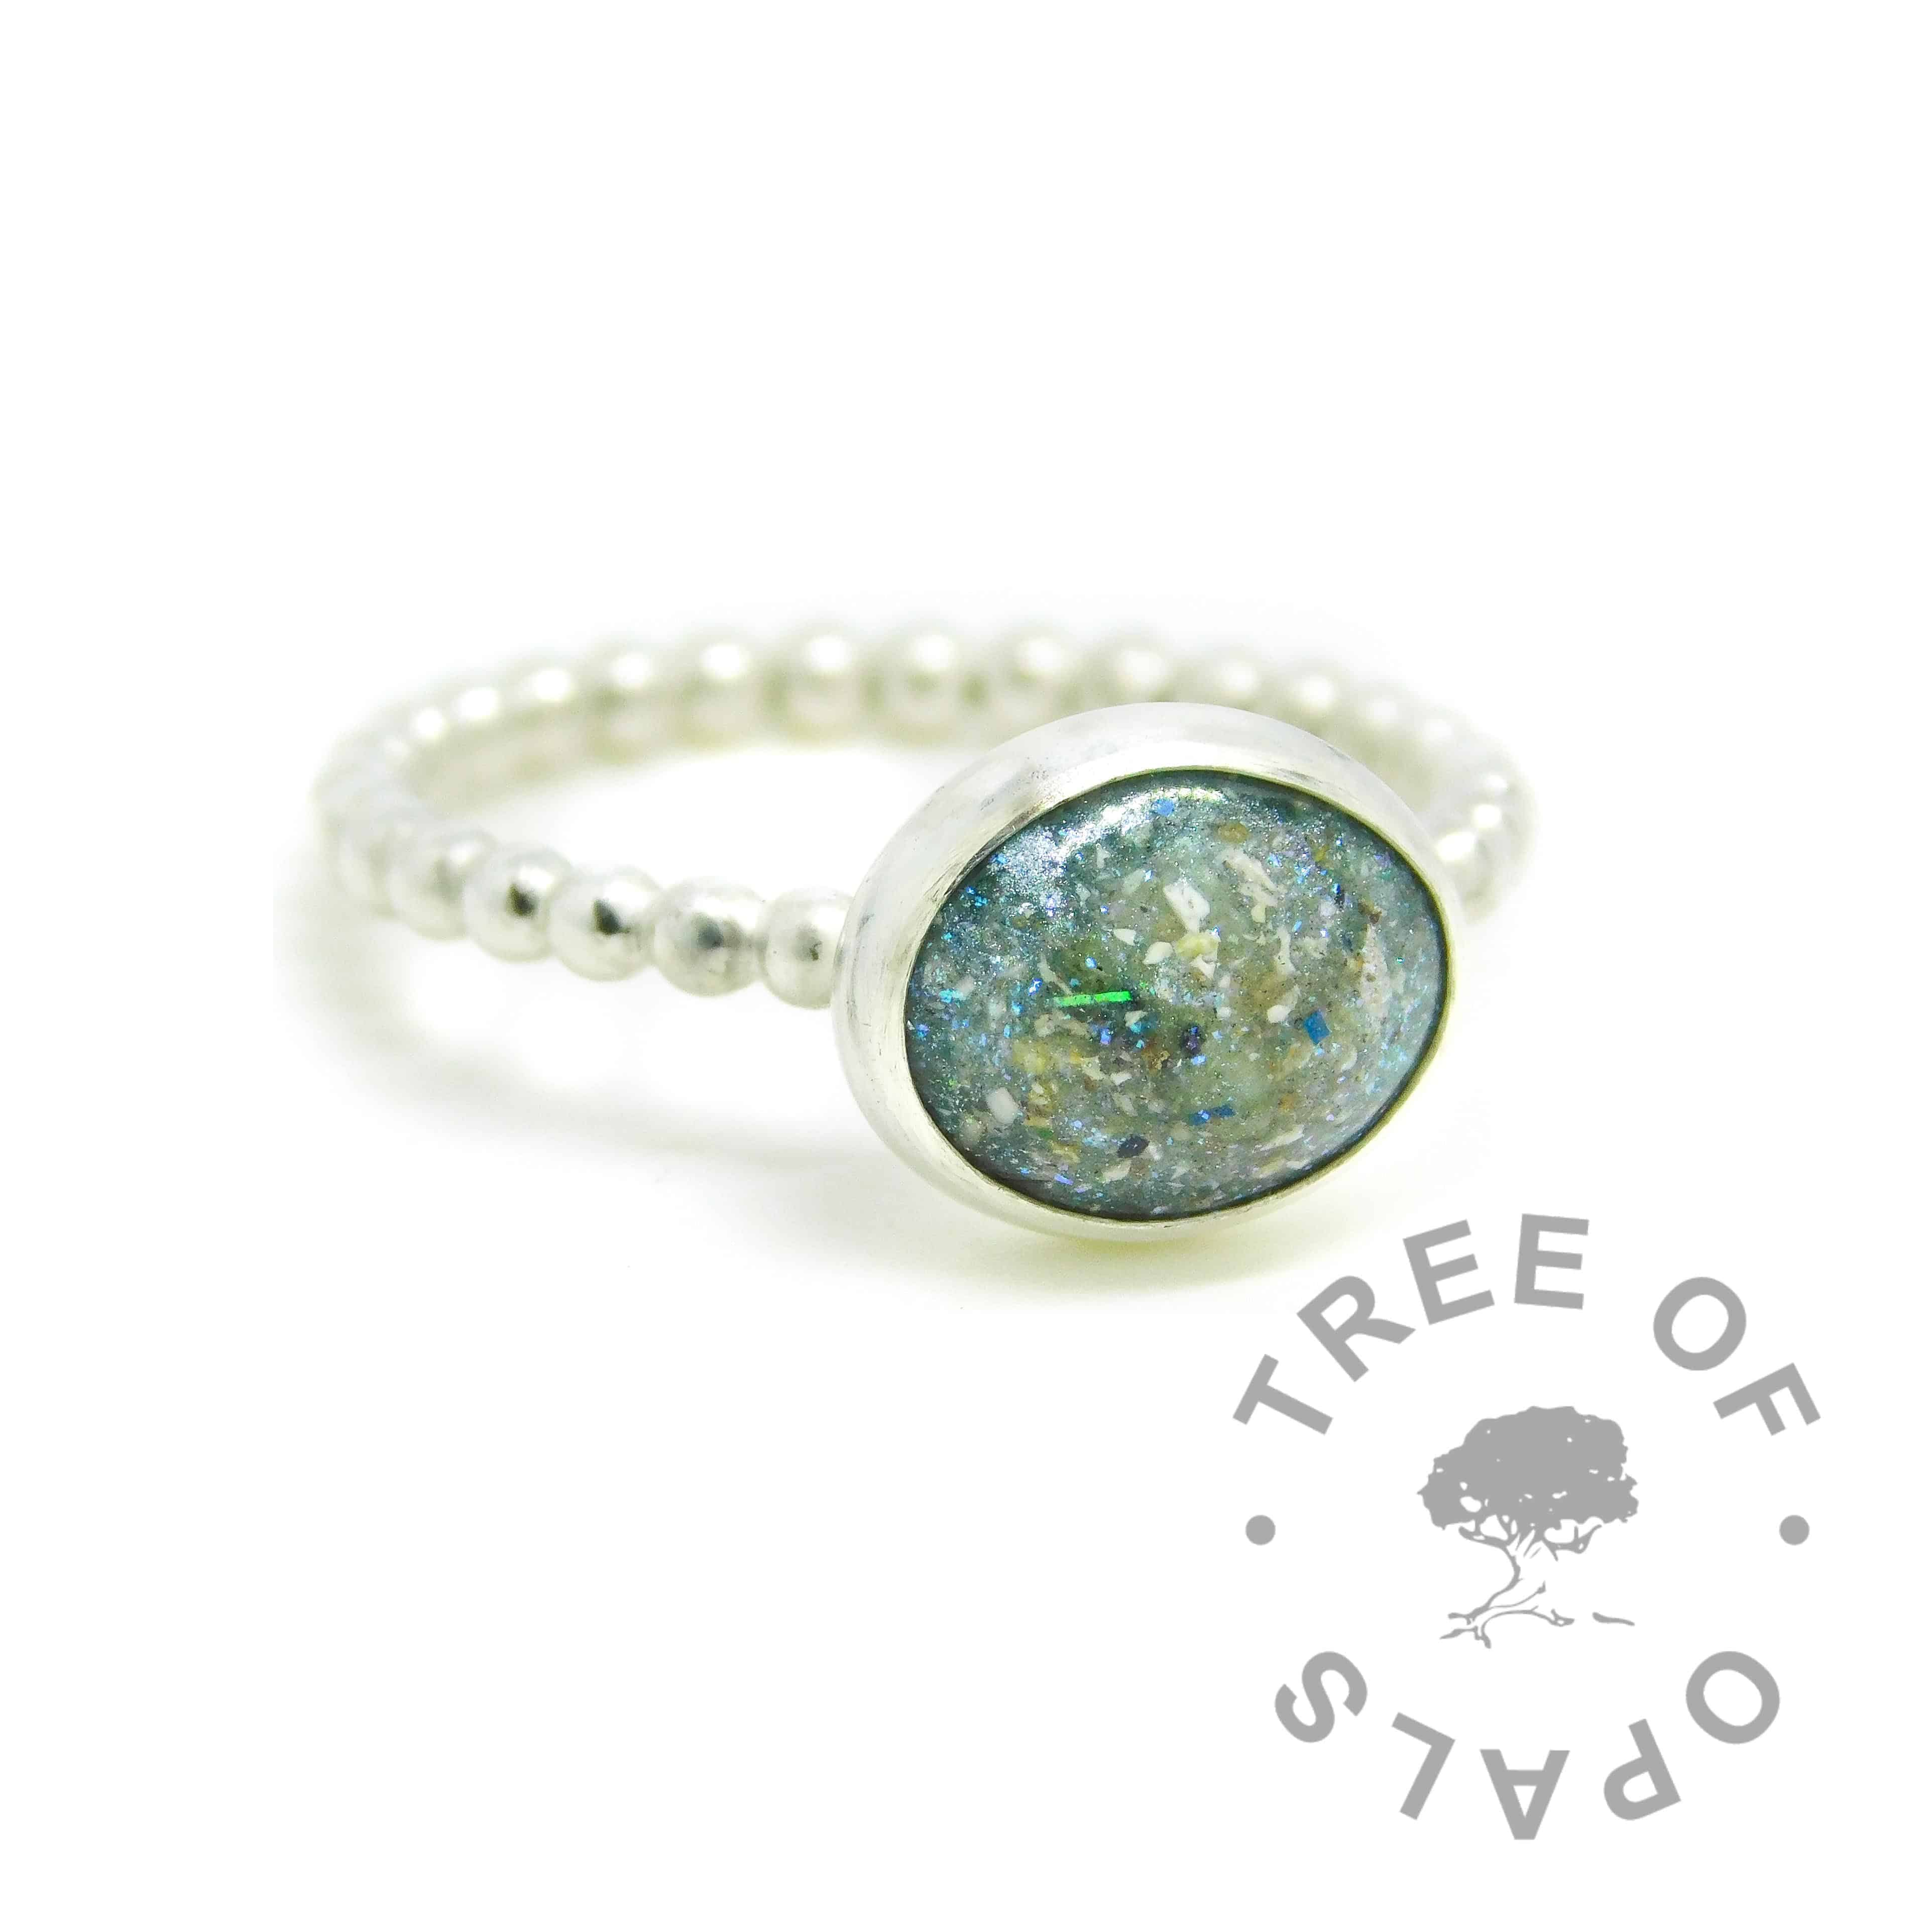 teal cremation ash ring on a handmade Argentium silver bubble wire band stacking ring. 10x8mm cabochon with cremation ashes and mermaid teal custom resin sparkle mix.